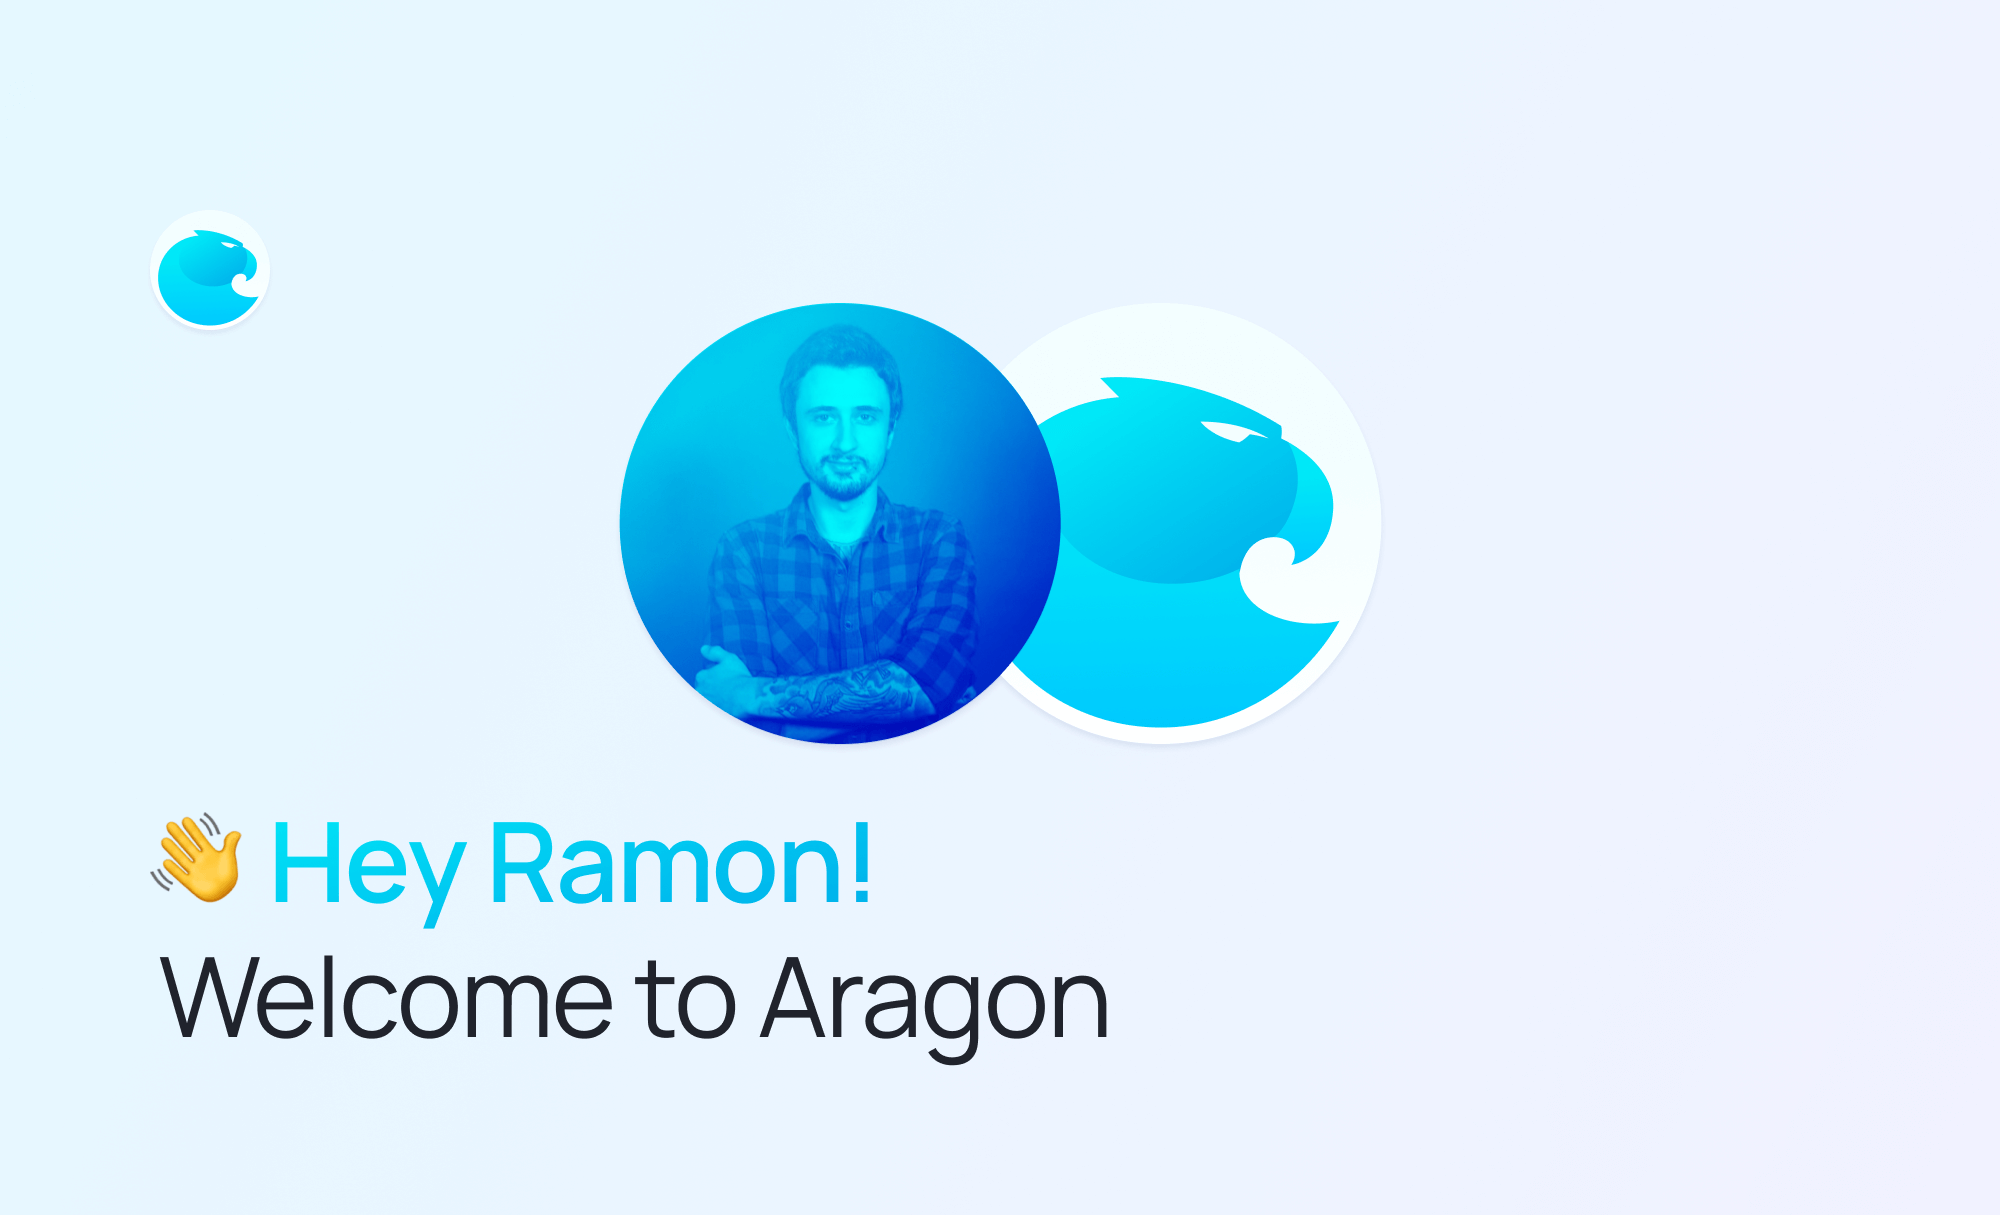 Welcome Ramon Canales Product Lead at the Aragon Association